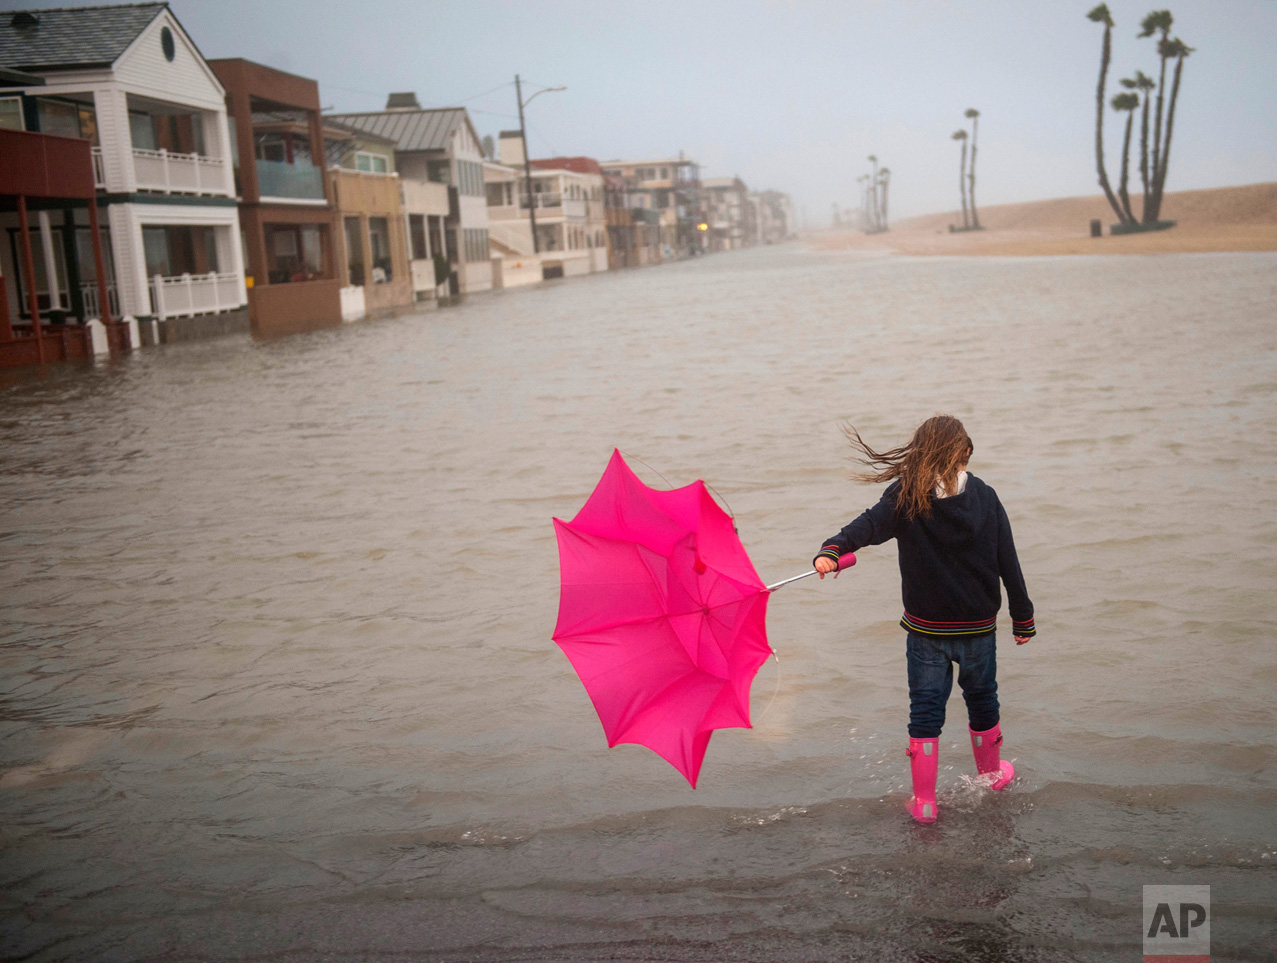 Isabella Busse, 6, holds an umbrella as she walks through floodwaters near the a pier during a storm in Seal Beach, Calif., Sunday, Jan. 22, 2017. The heavy downpour on Sunday drenched Orange County in one of the heaviest storms of the year. (Ana Venegas/The Orange County Register via AP)